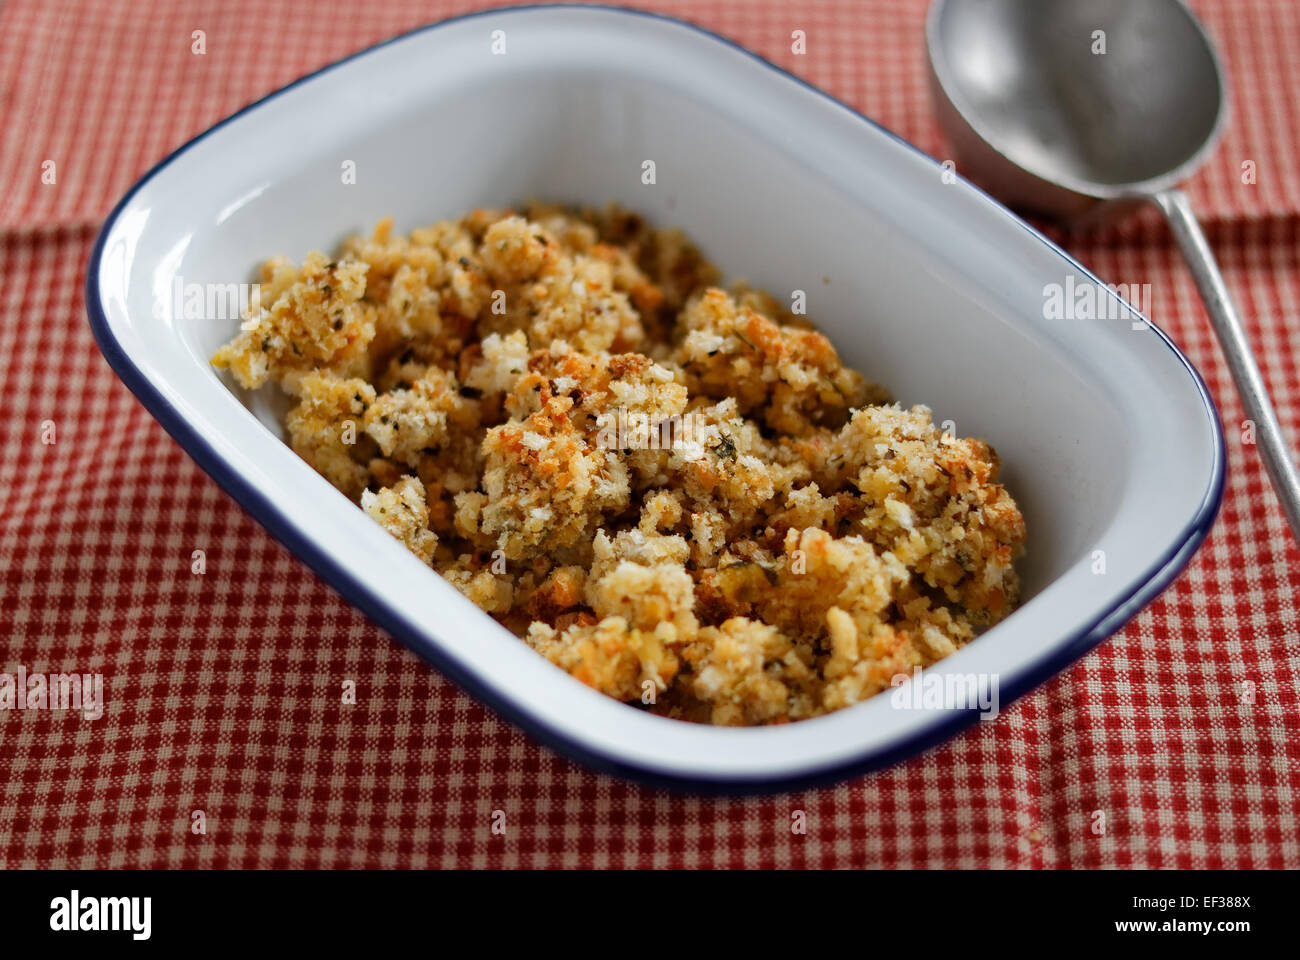 Bread stuffing - Stock Image